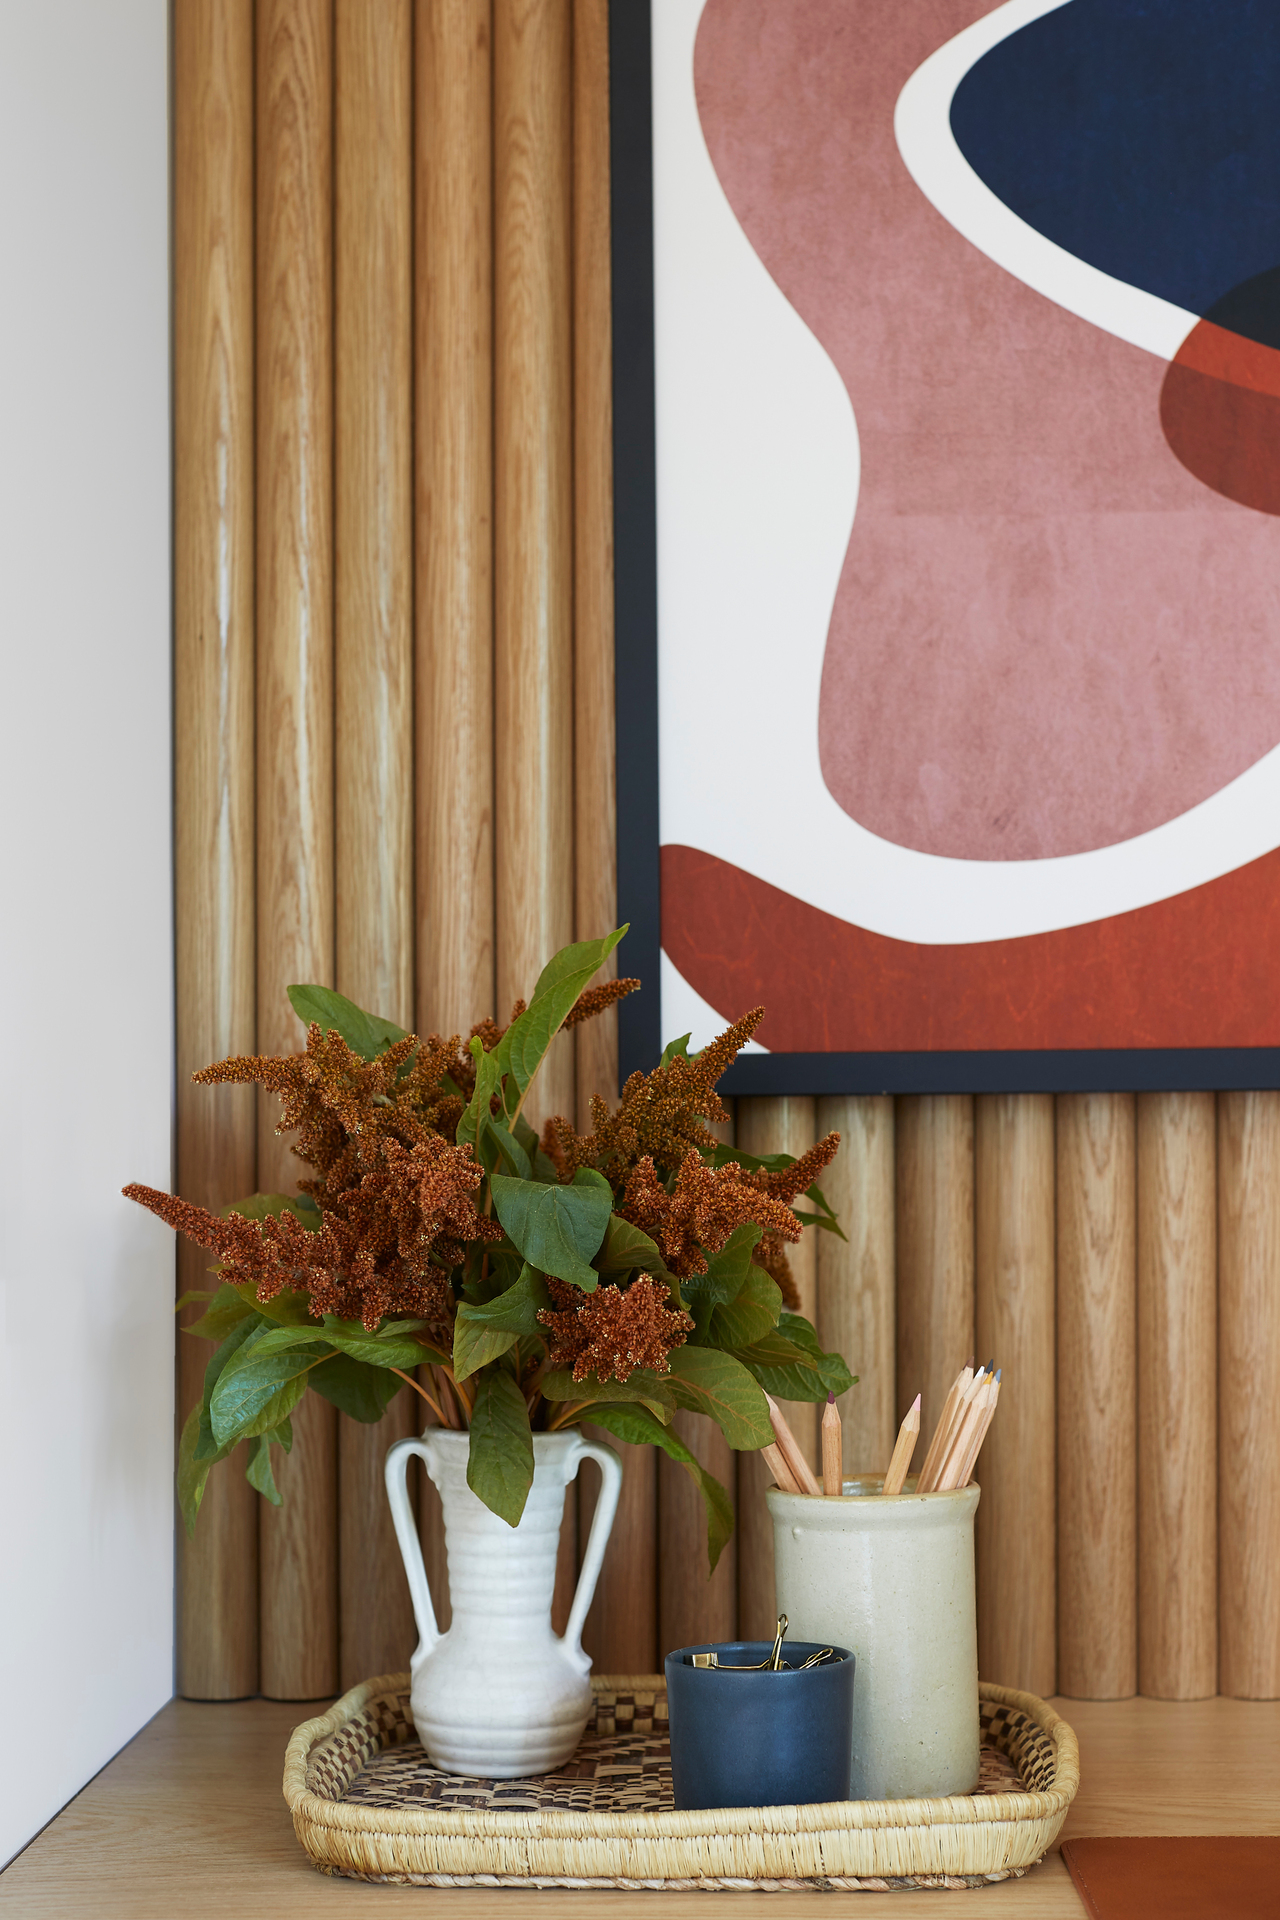 170 square foot room makeover using tambour wood wall panels as an accent.  Photographer: Jessica j Alexander Photography